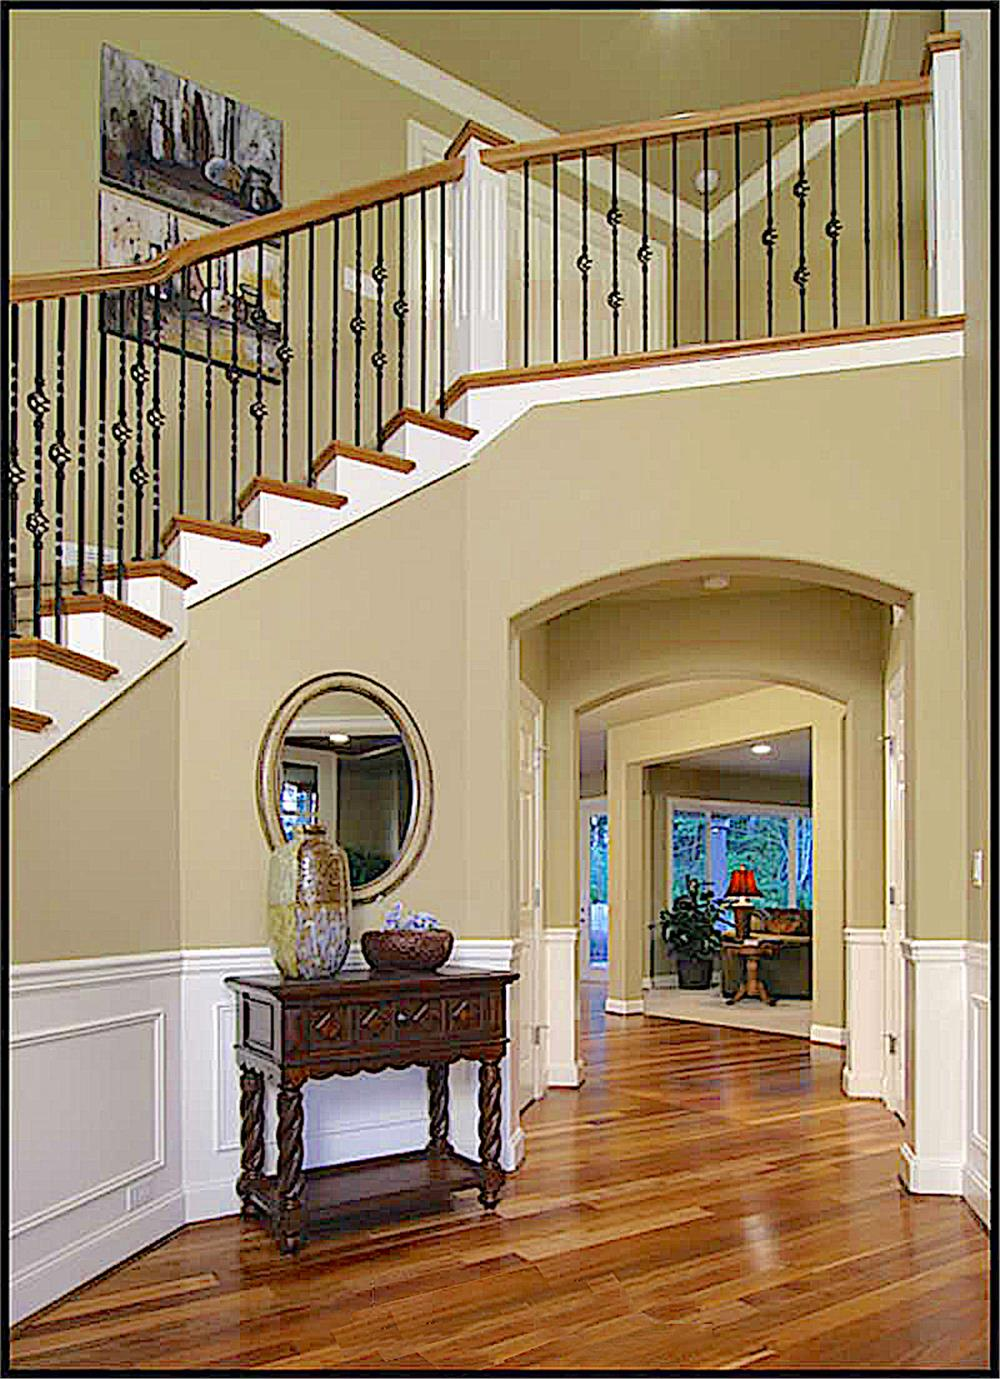 Entry wall with open staircase and exquisite trim detail